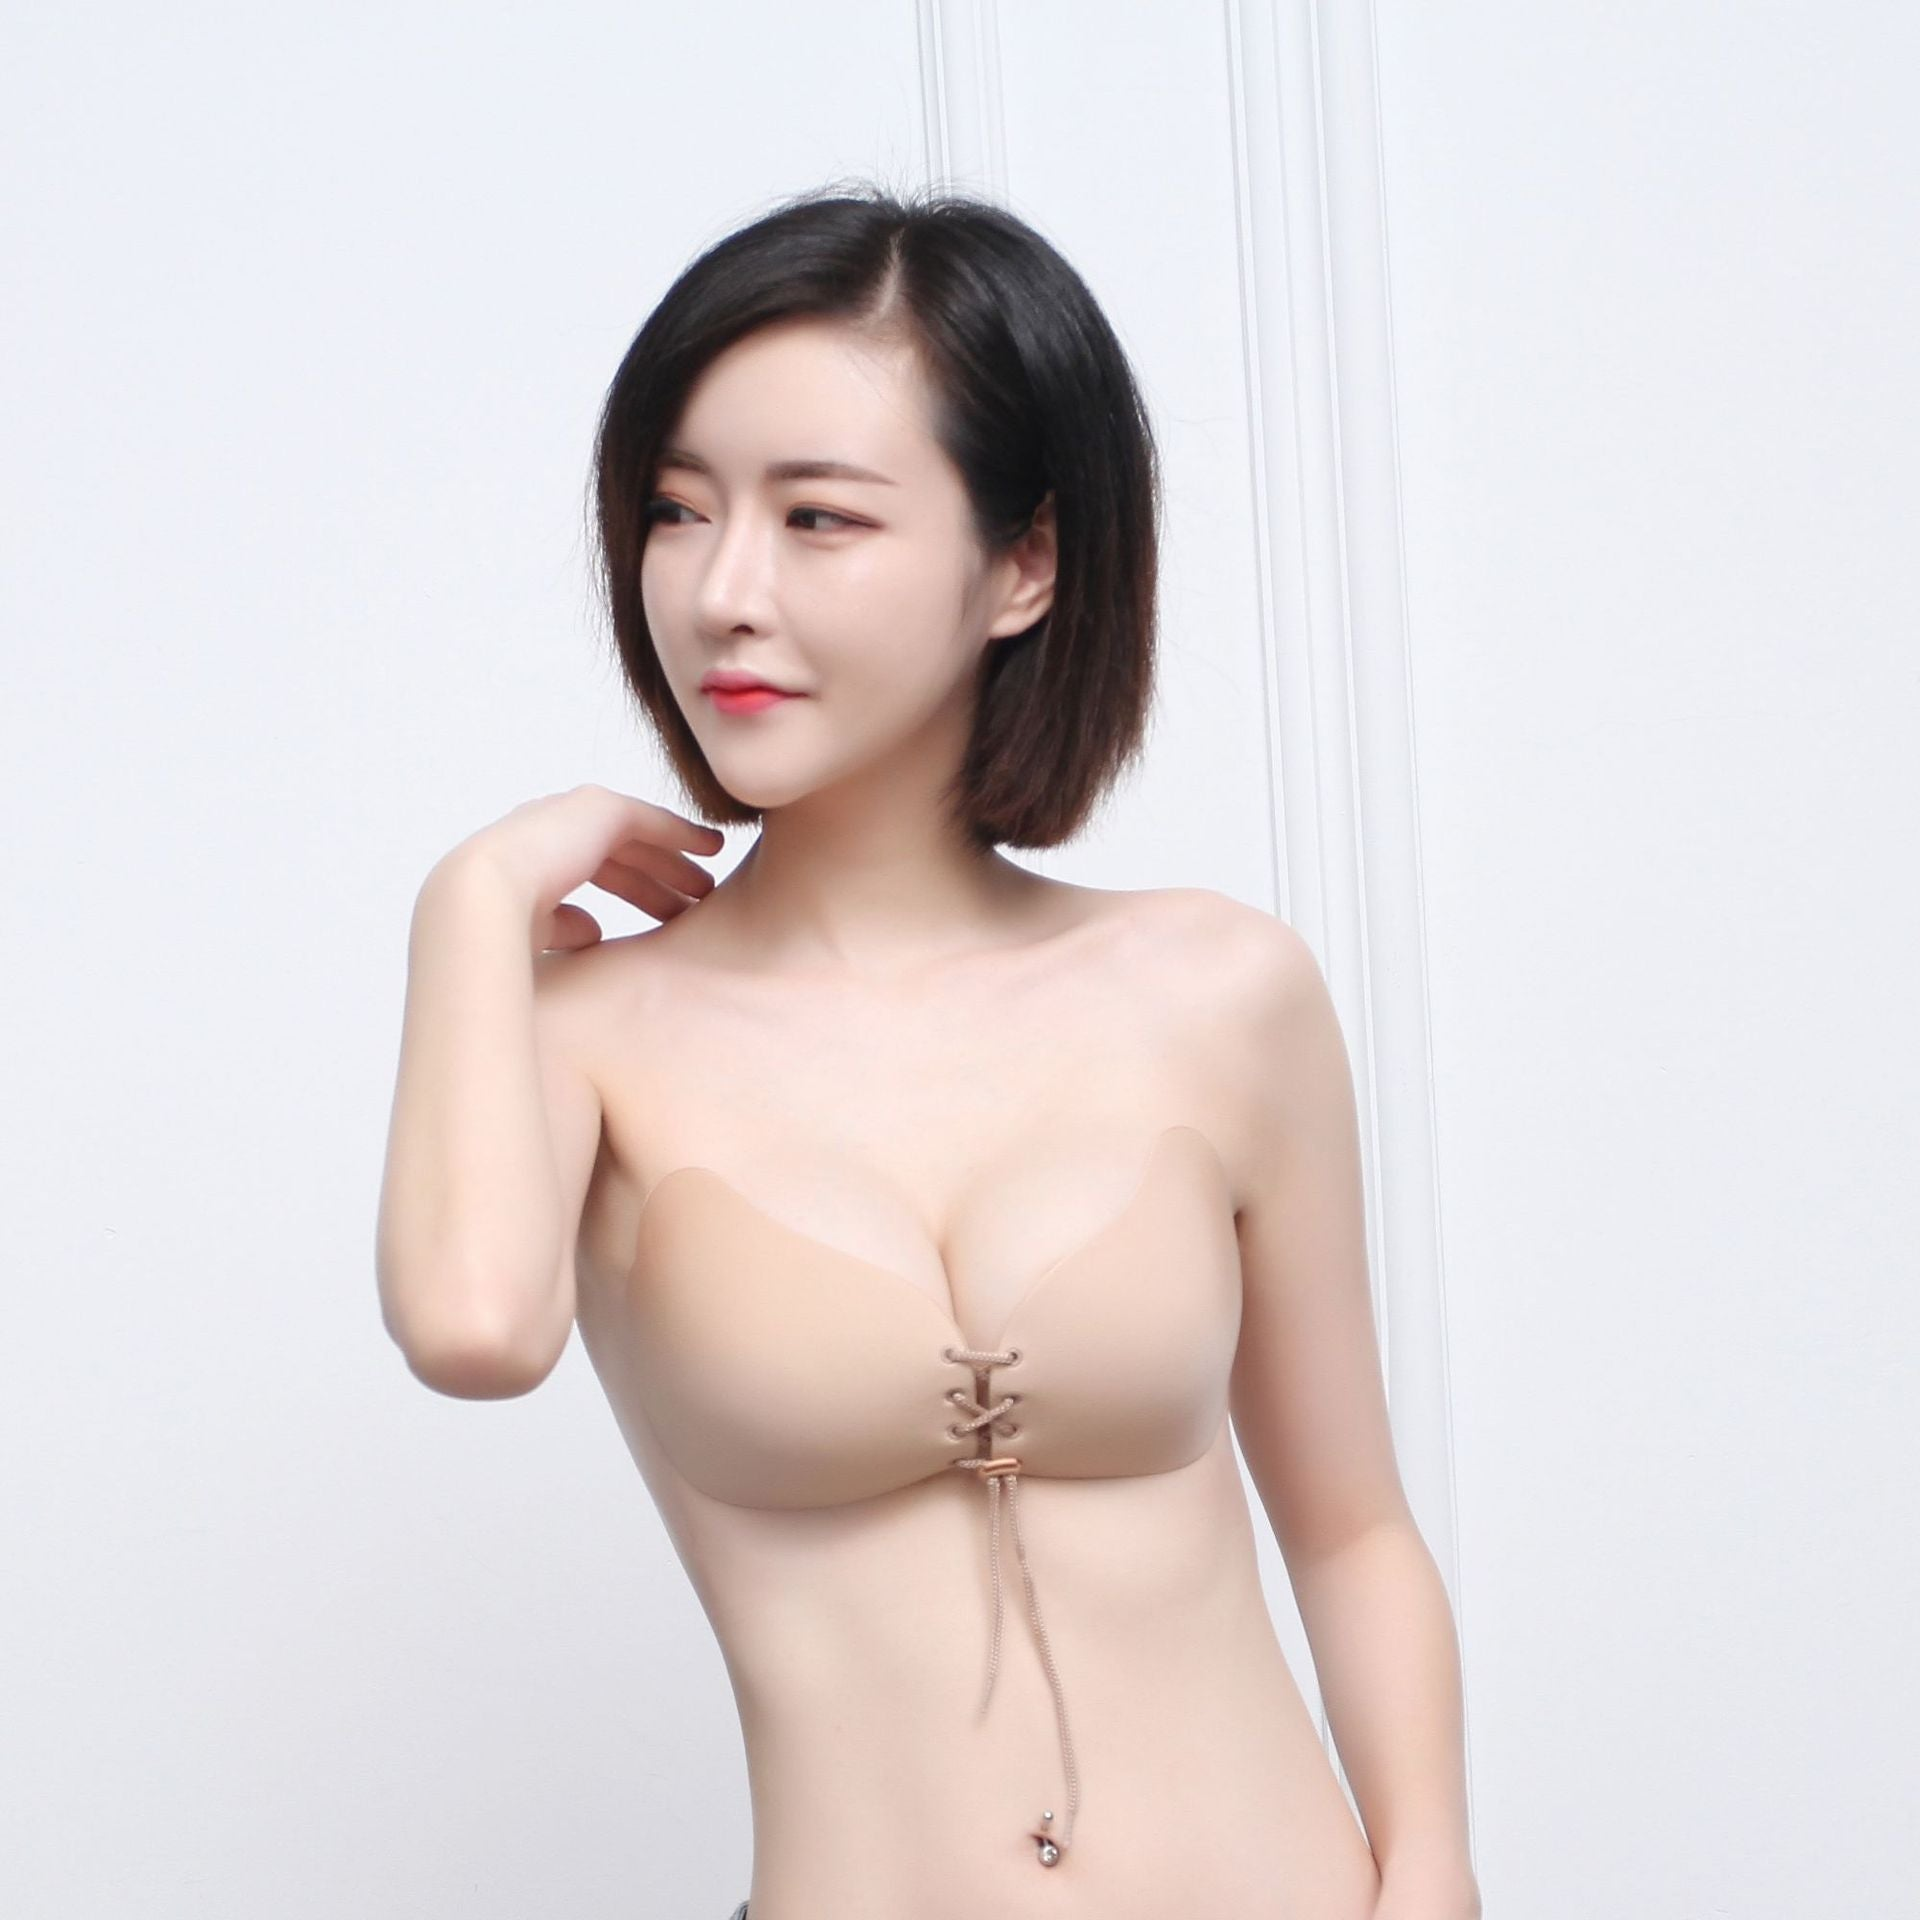 Explosion Lala Goddess chest stickers drawstring invisible silicone bra new gathering Lala temptation seamless bra wholesale